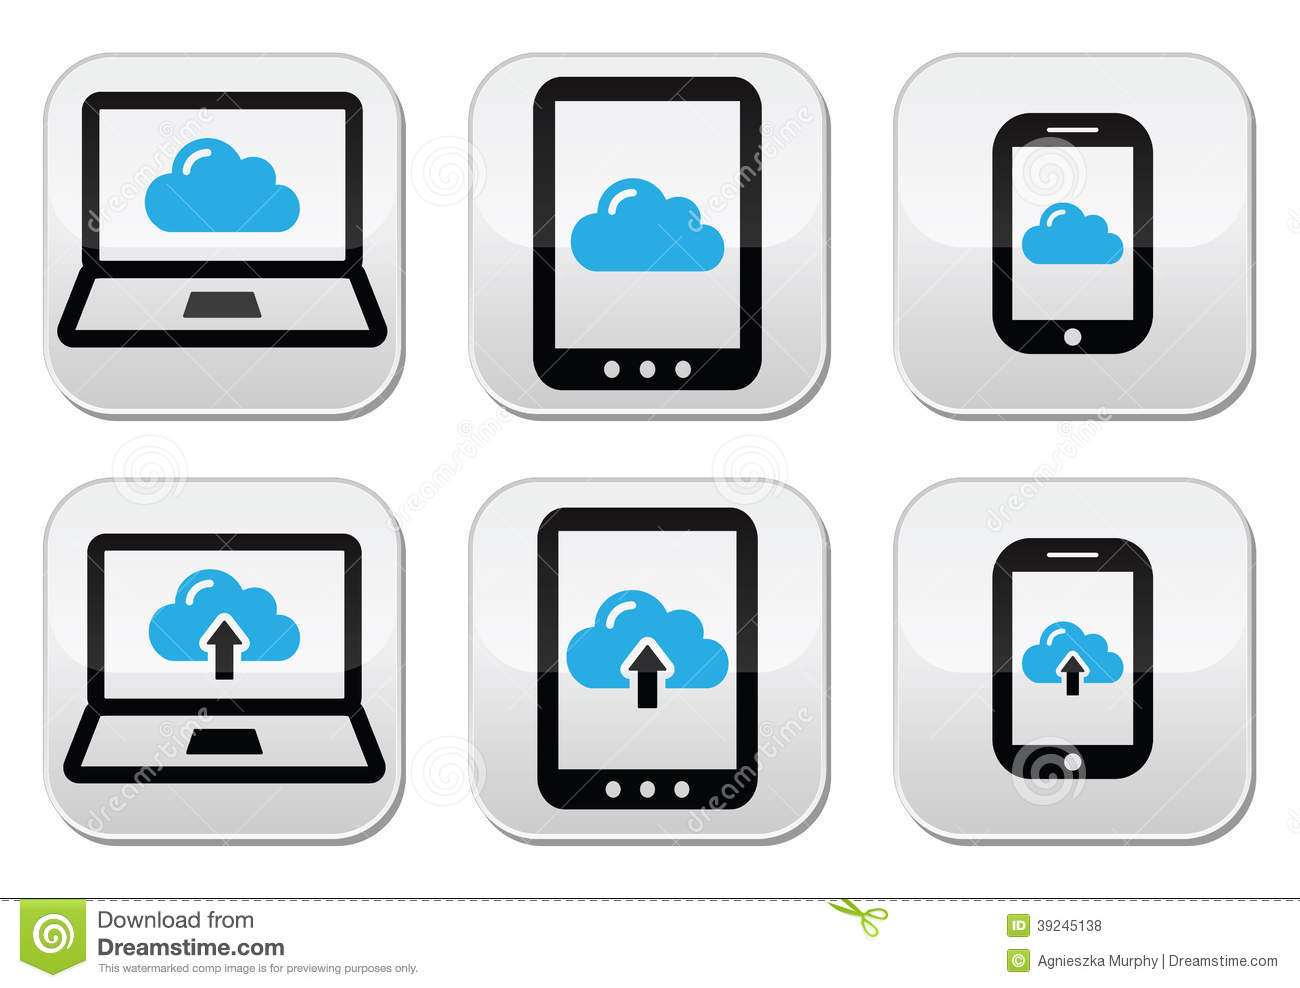 Cloud network on laptop, tablet, smartphone icons